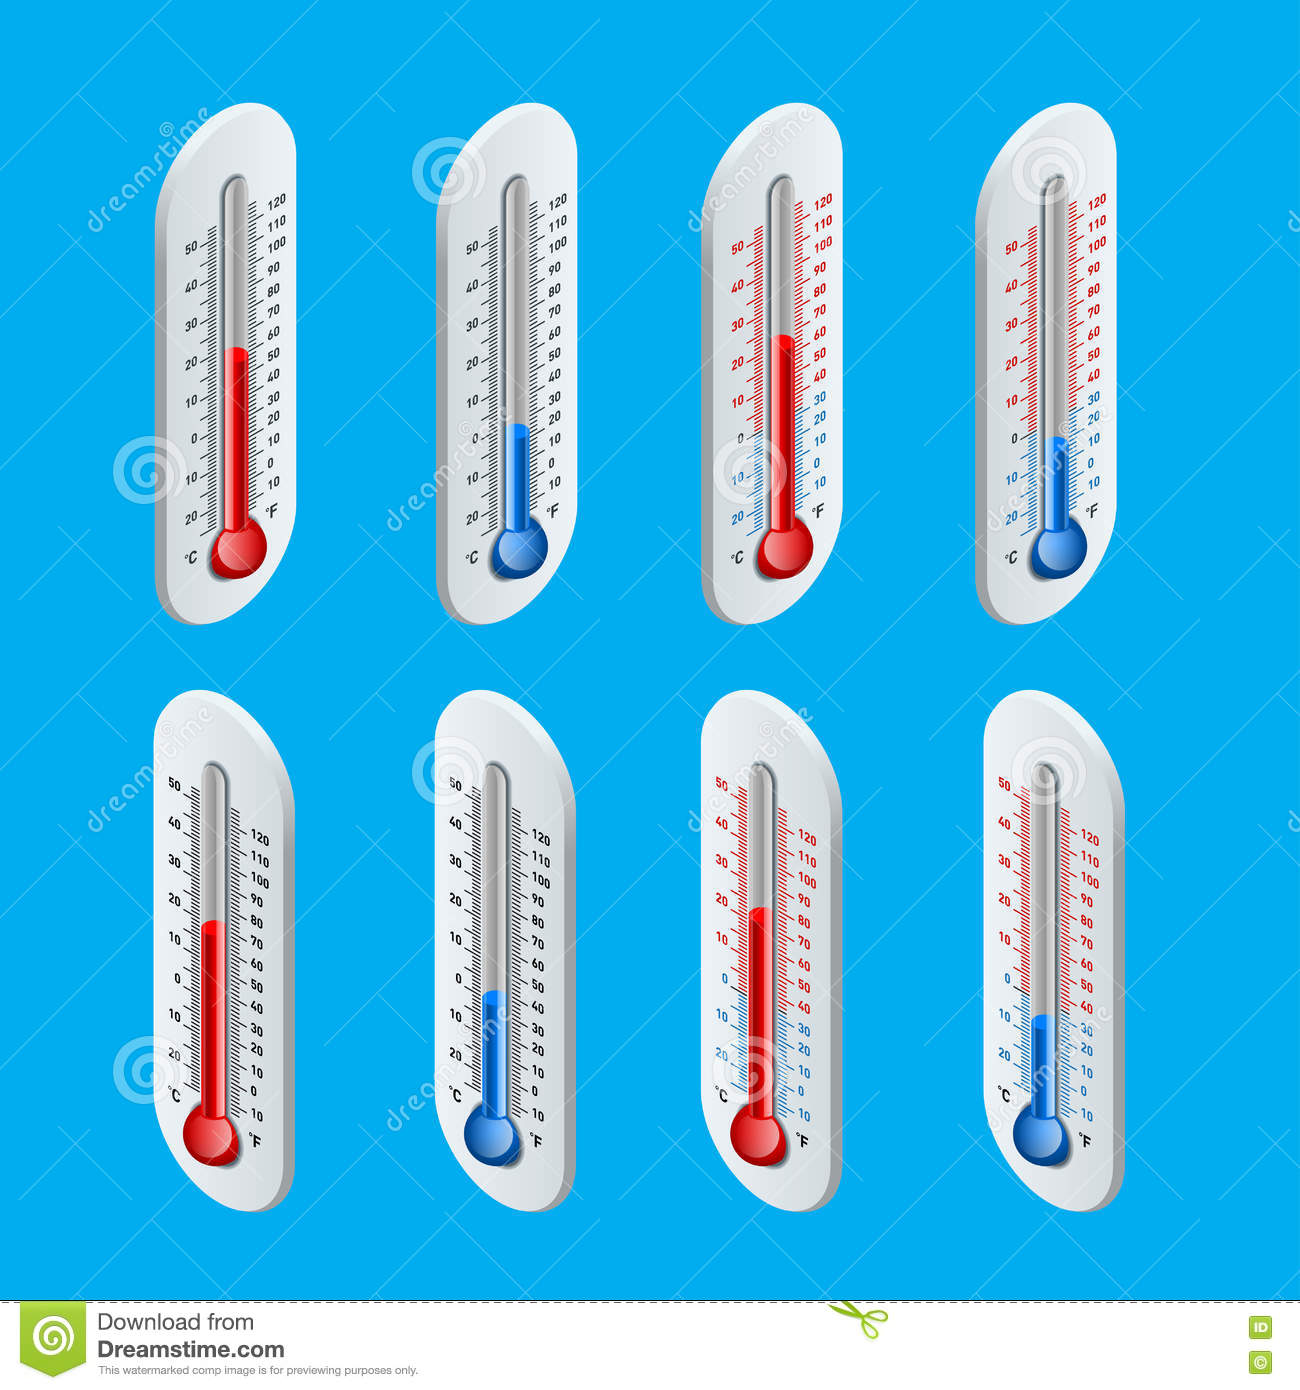 Thermometer Hot And Cold Temperature Vector Illustration